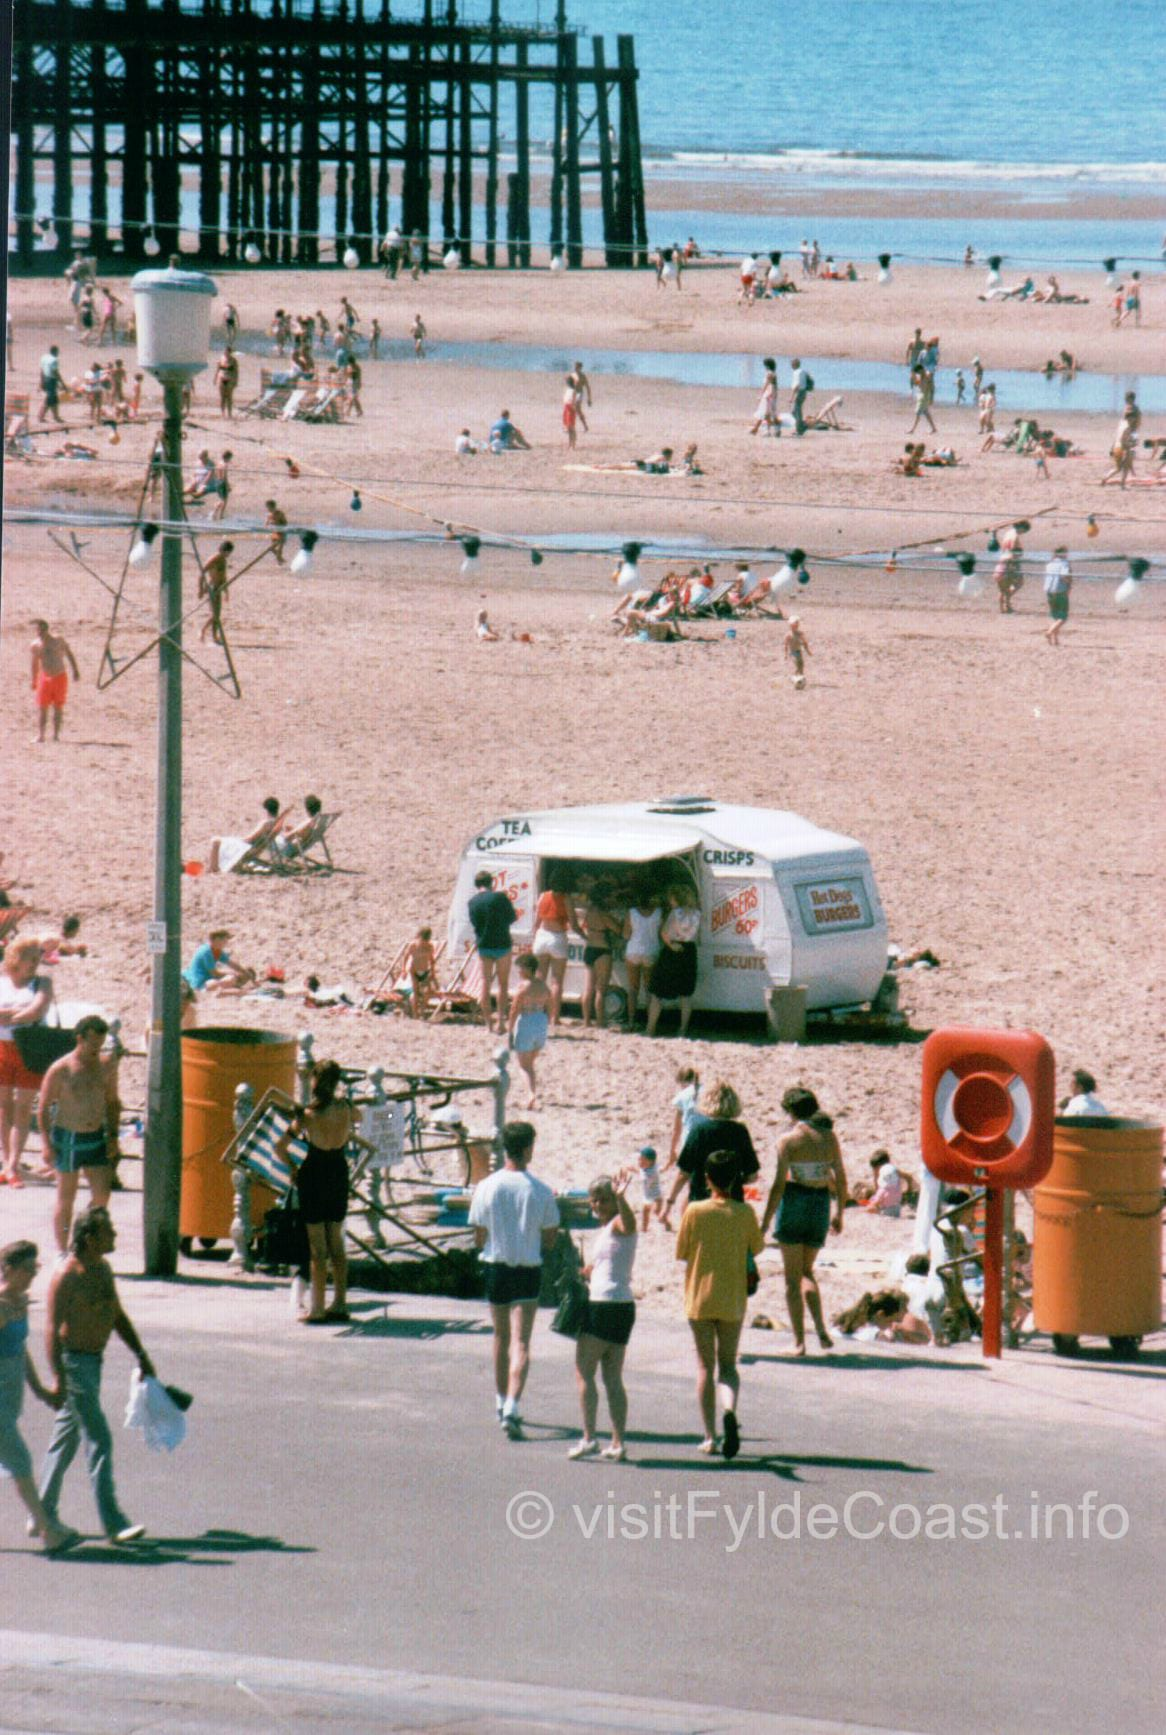 Blackpool South Beach c1990. Old Blackpool photos, archives from Visit Fylde Coast